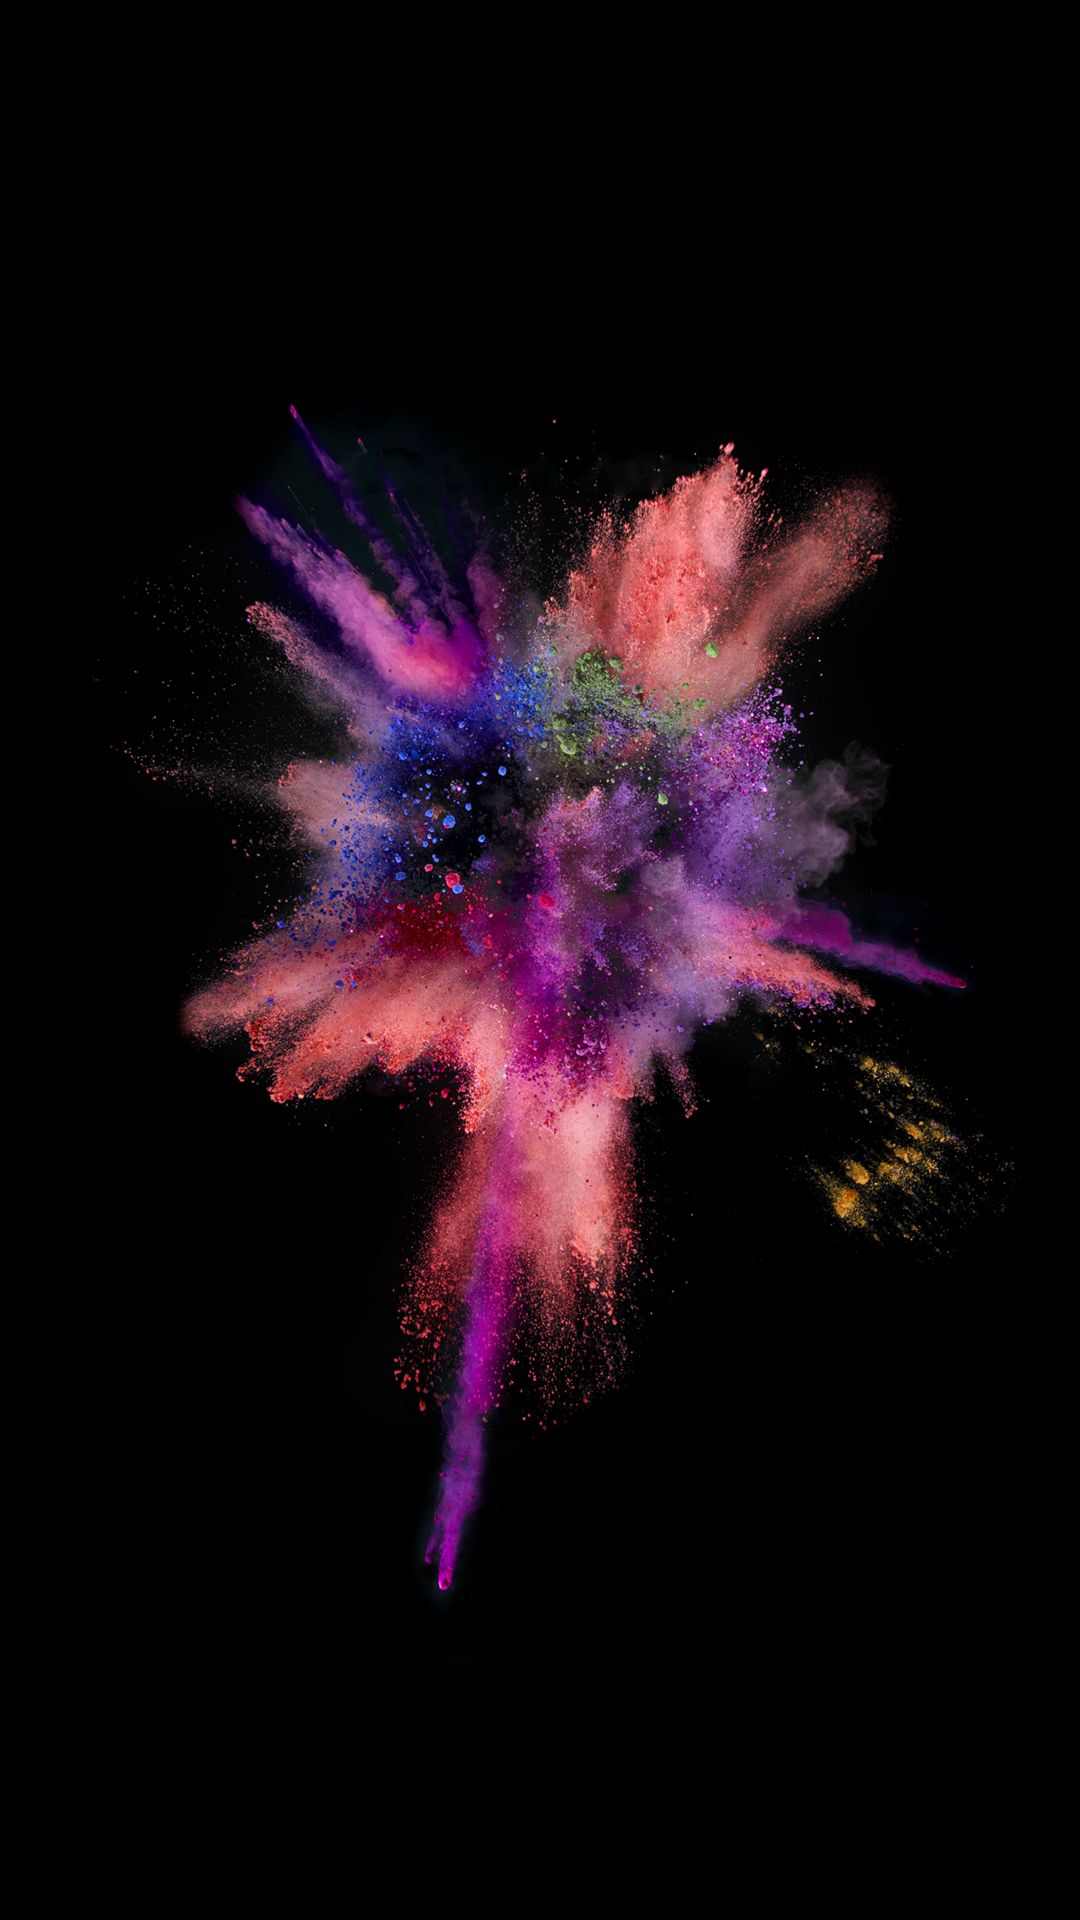 Ios9 Colorful Explosion Smoke Dark Iphone 6 Wallpaper